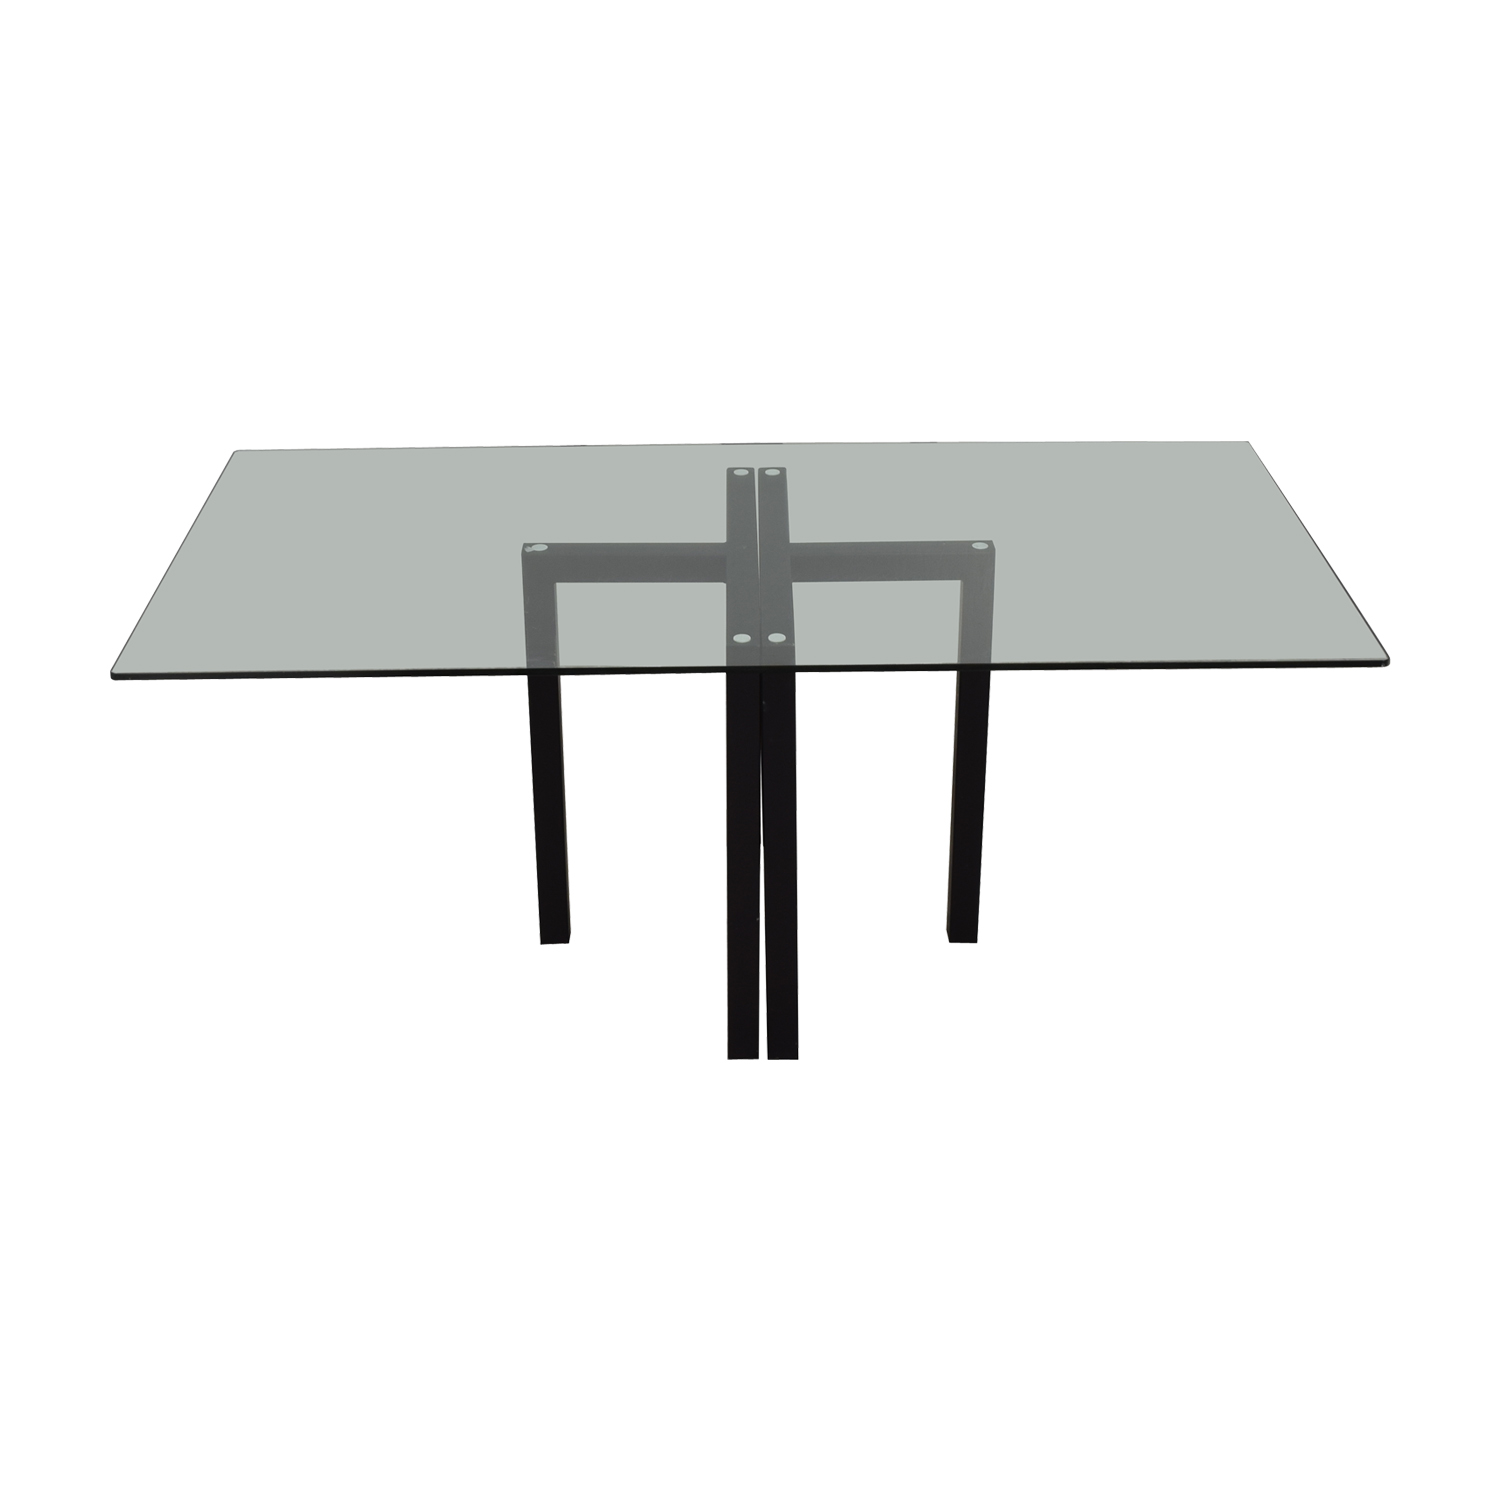 Crate & Barrel Crate & Barrel Glass Dining Table or Desk second hand